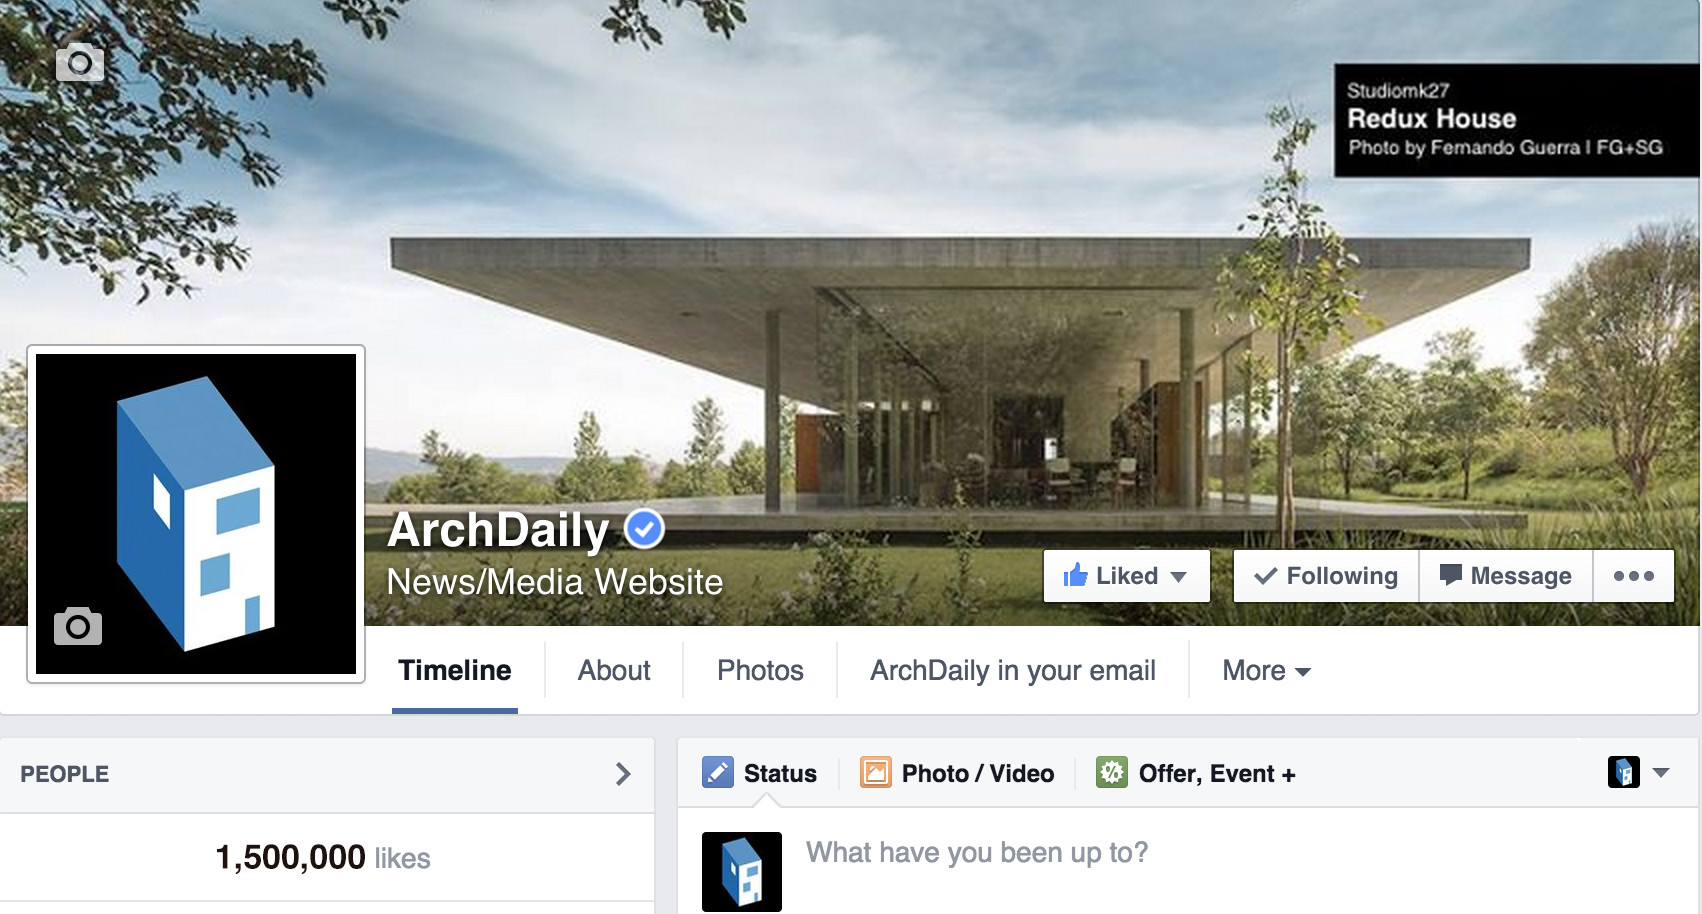 ArchDaily's Top 10 Facebook Posts